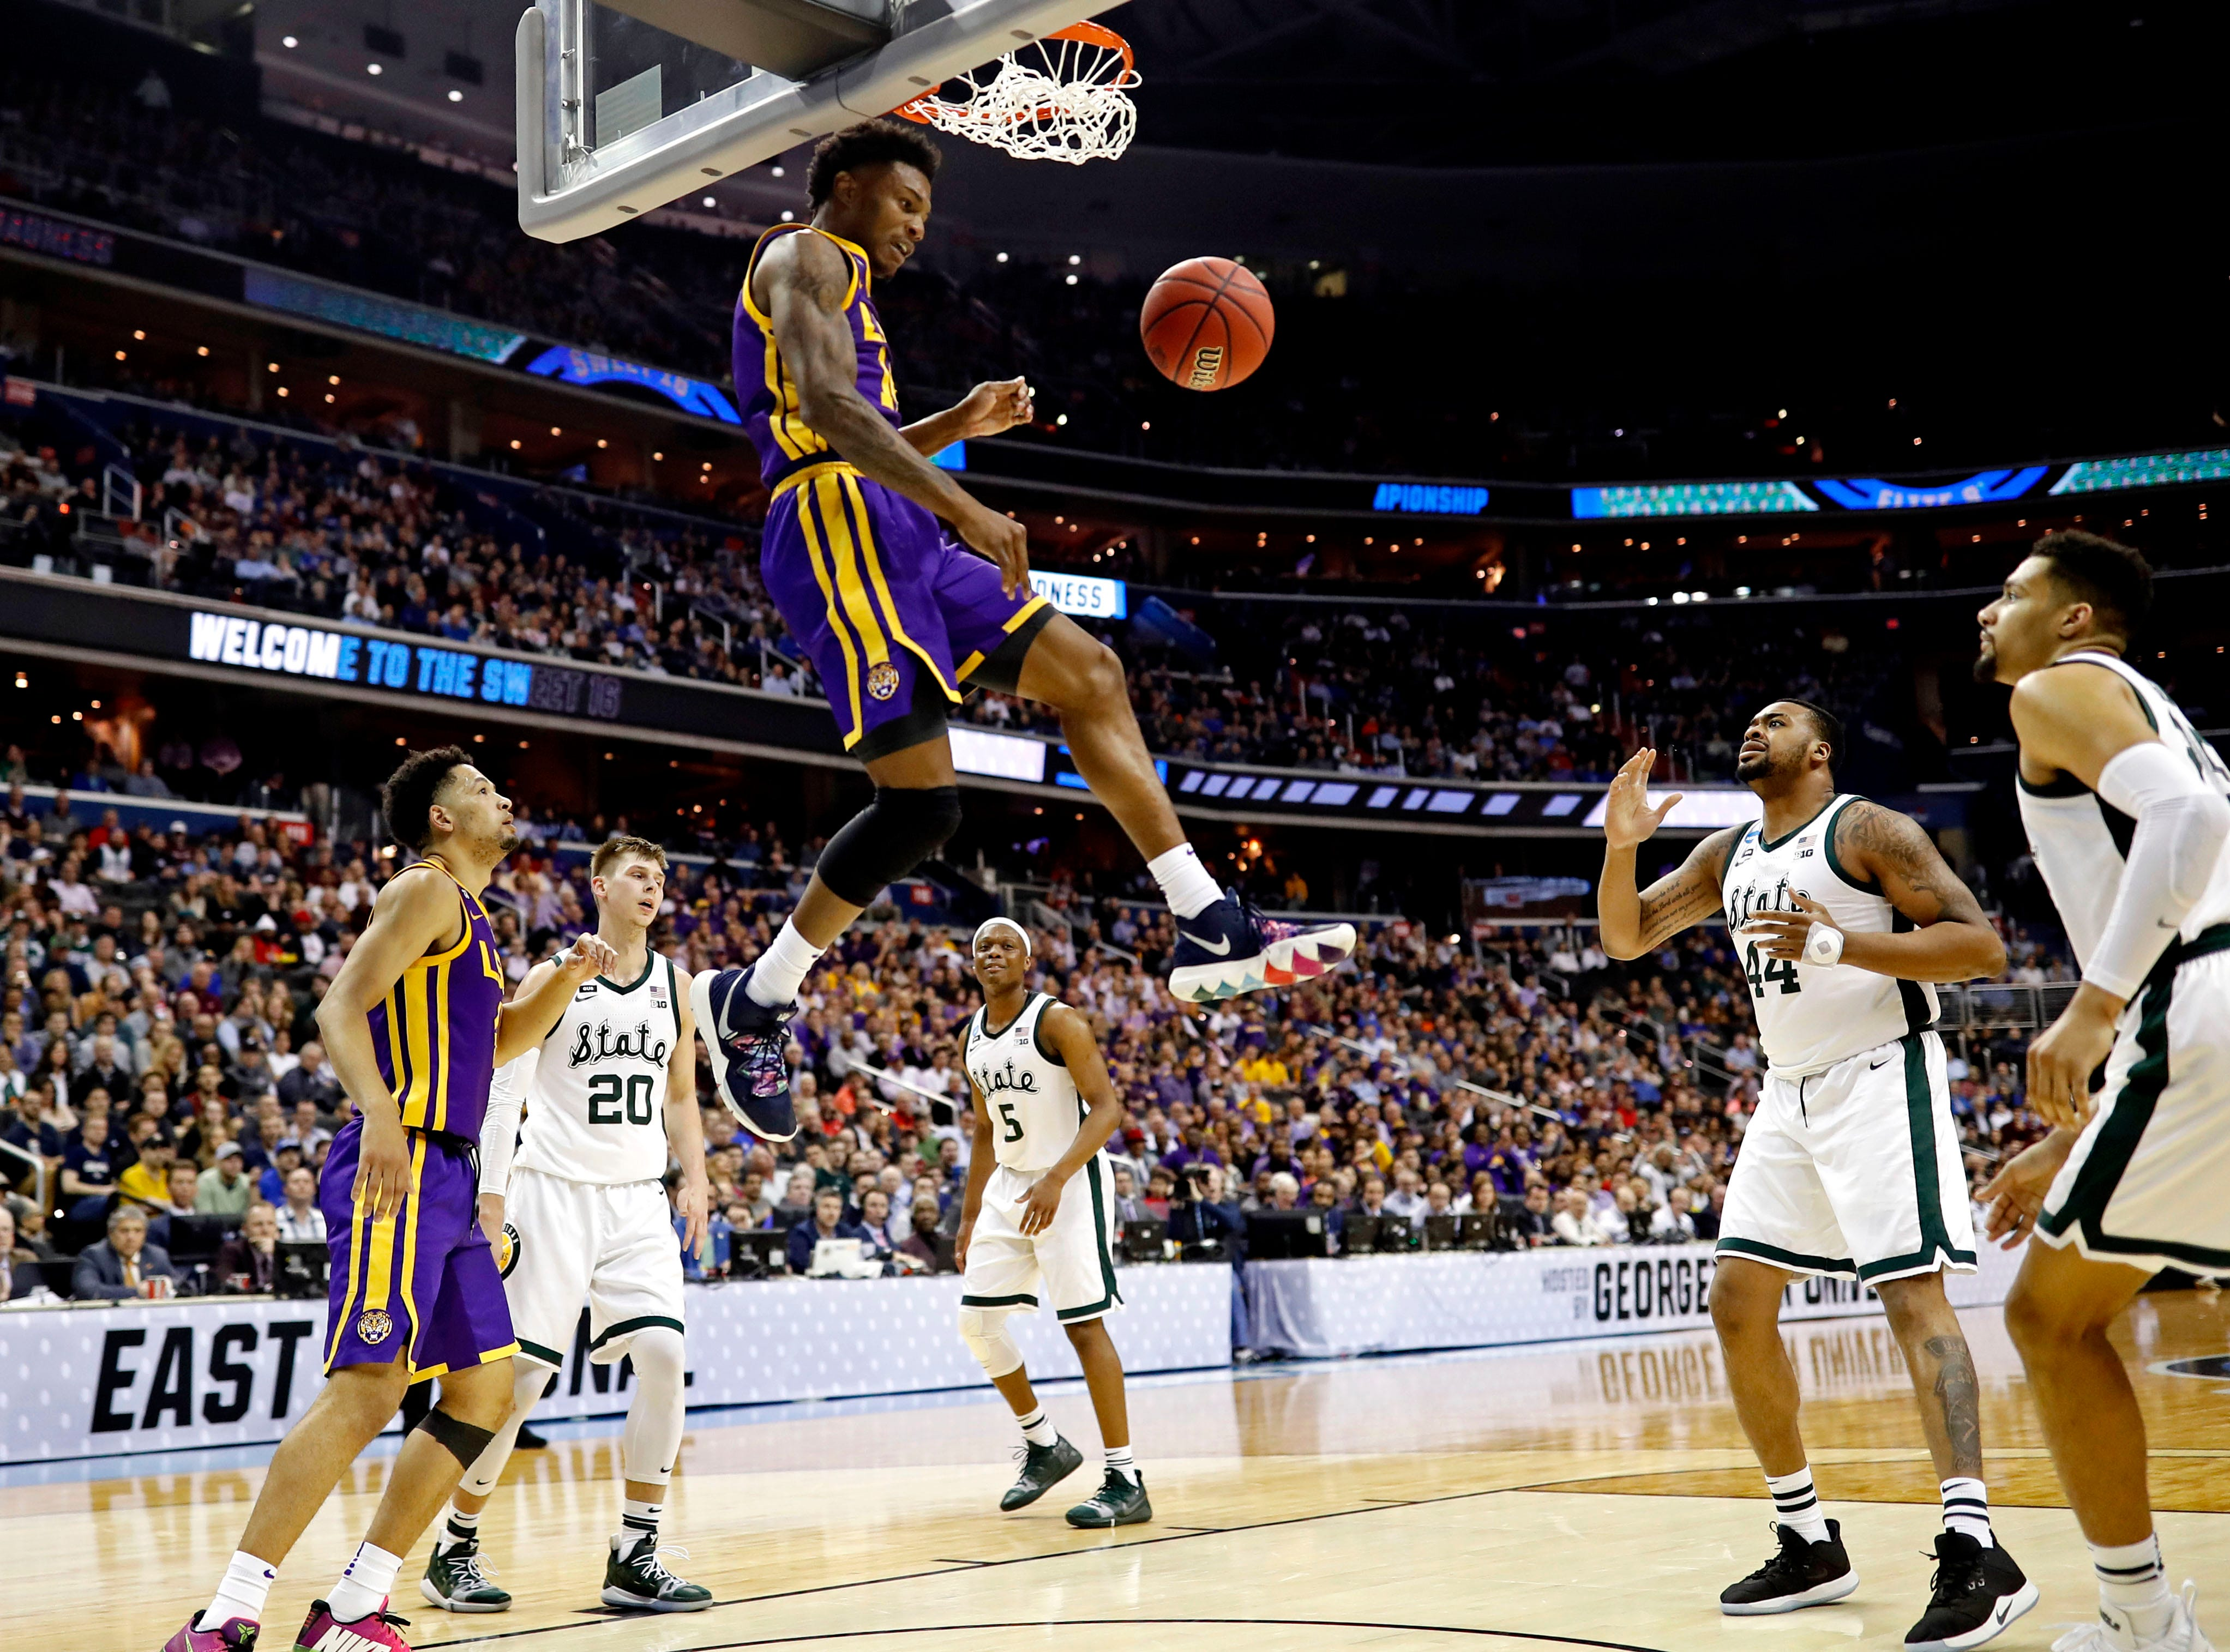 Mar 29, 2019; Washington, DC, USA; LSU Tigers guard Marlon Taylor (14) dunks the ball during the first half against the Michigan State Spartans in the semifinals of the east regional of the 2019 NCAA Tournament at Capital One Arena. Mandatory Credit: Geoff Burke-USA TODAY Sports